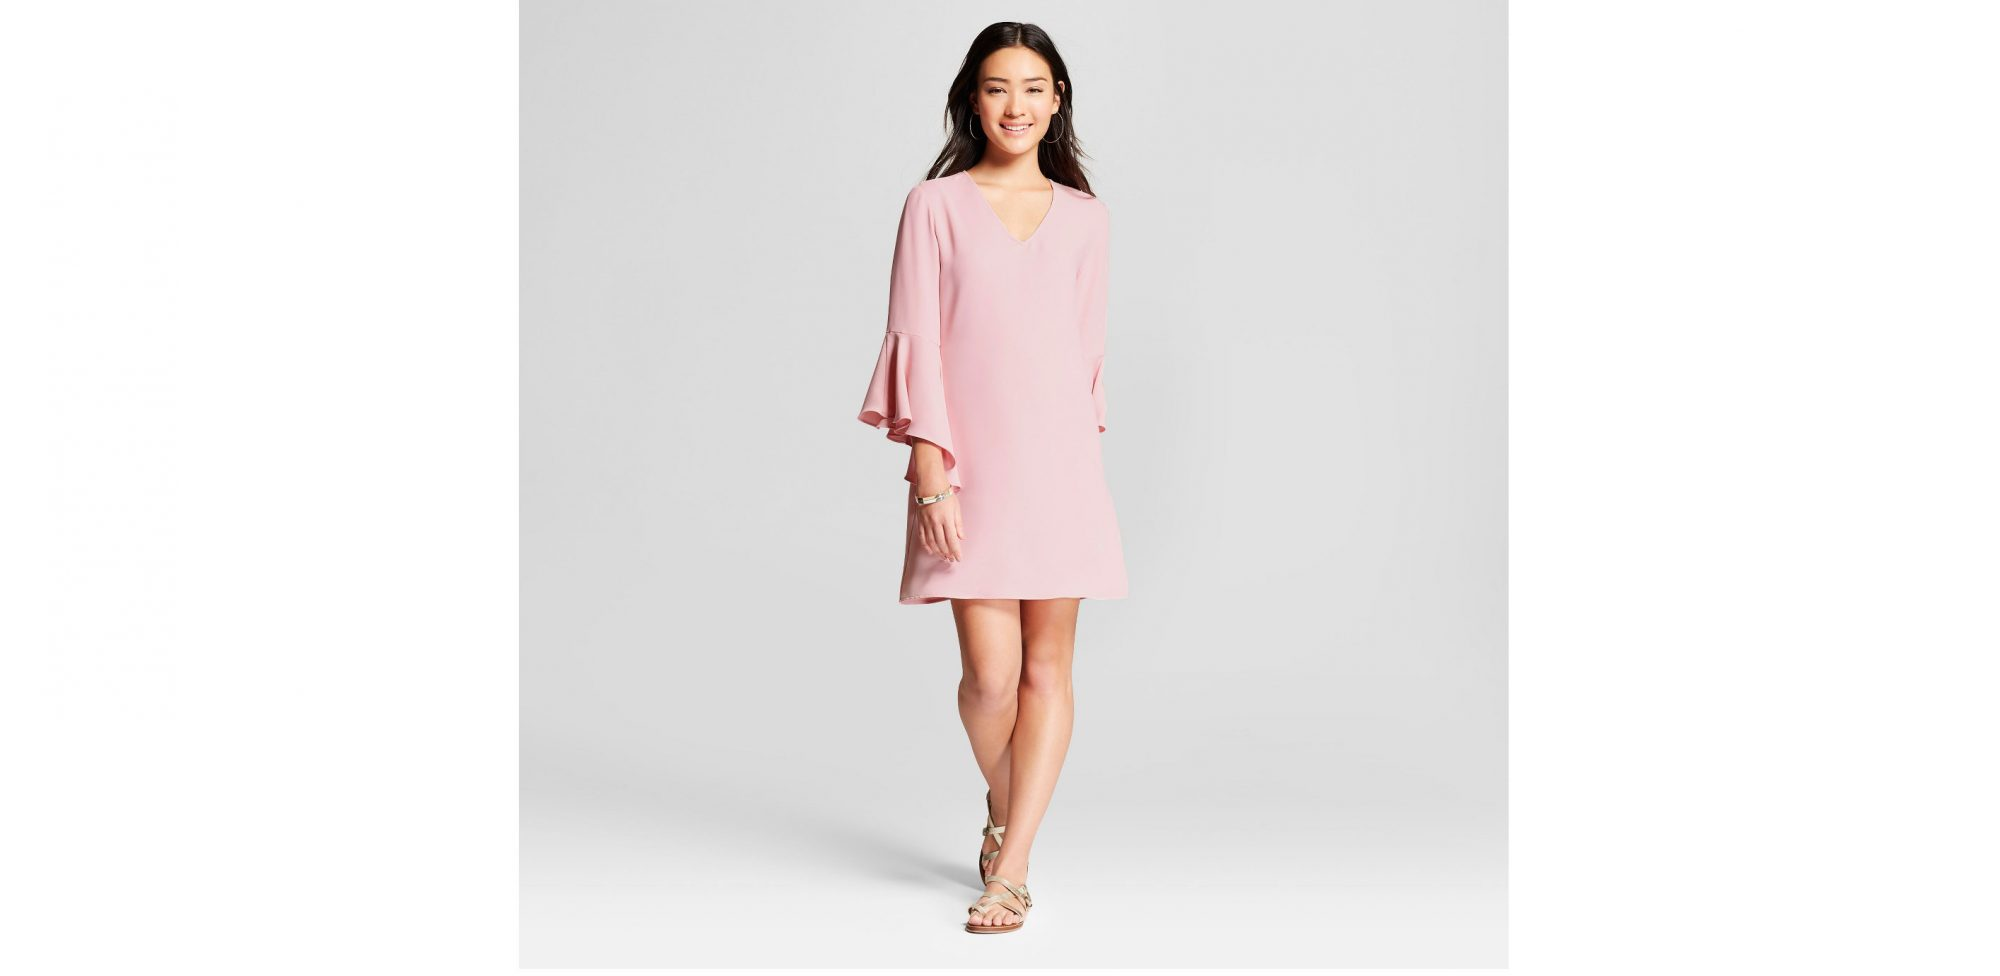 bell-sleeve-pink-dress